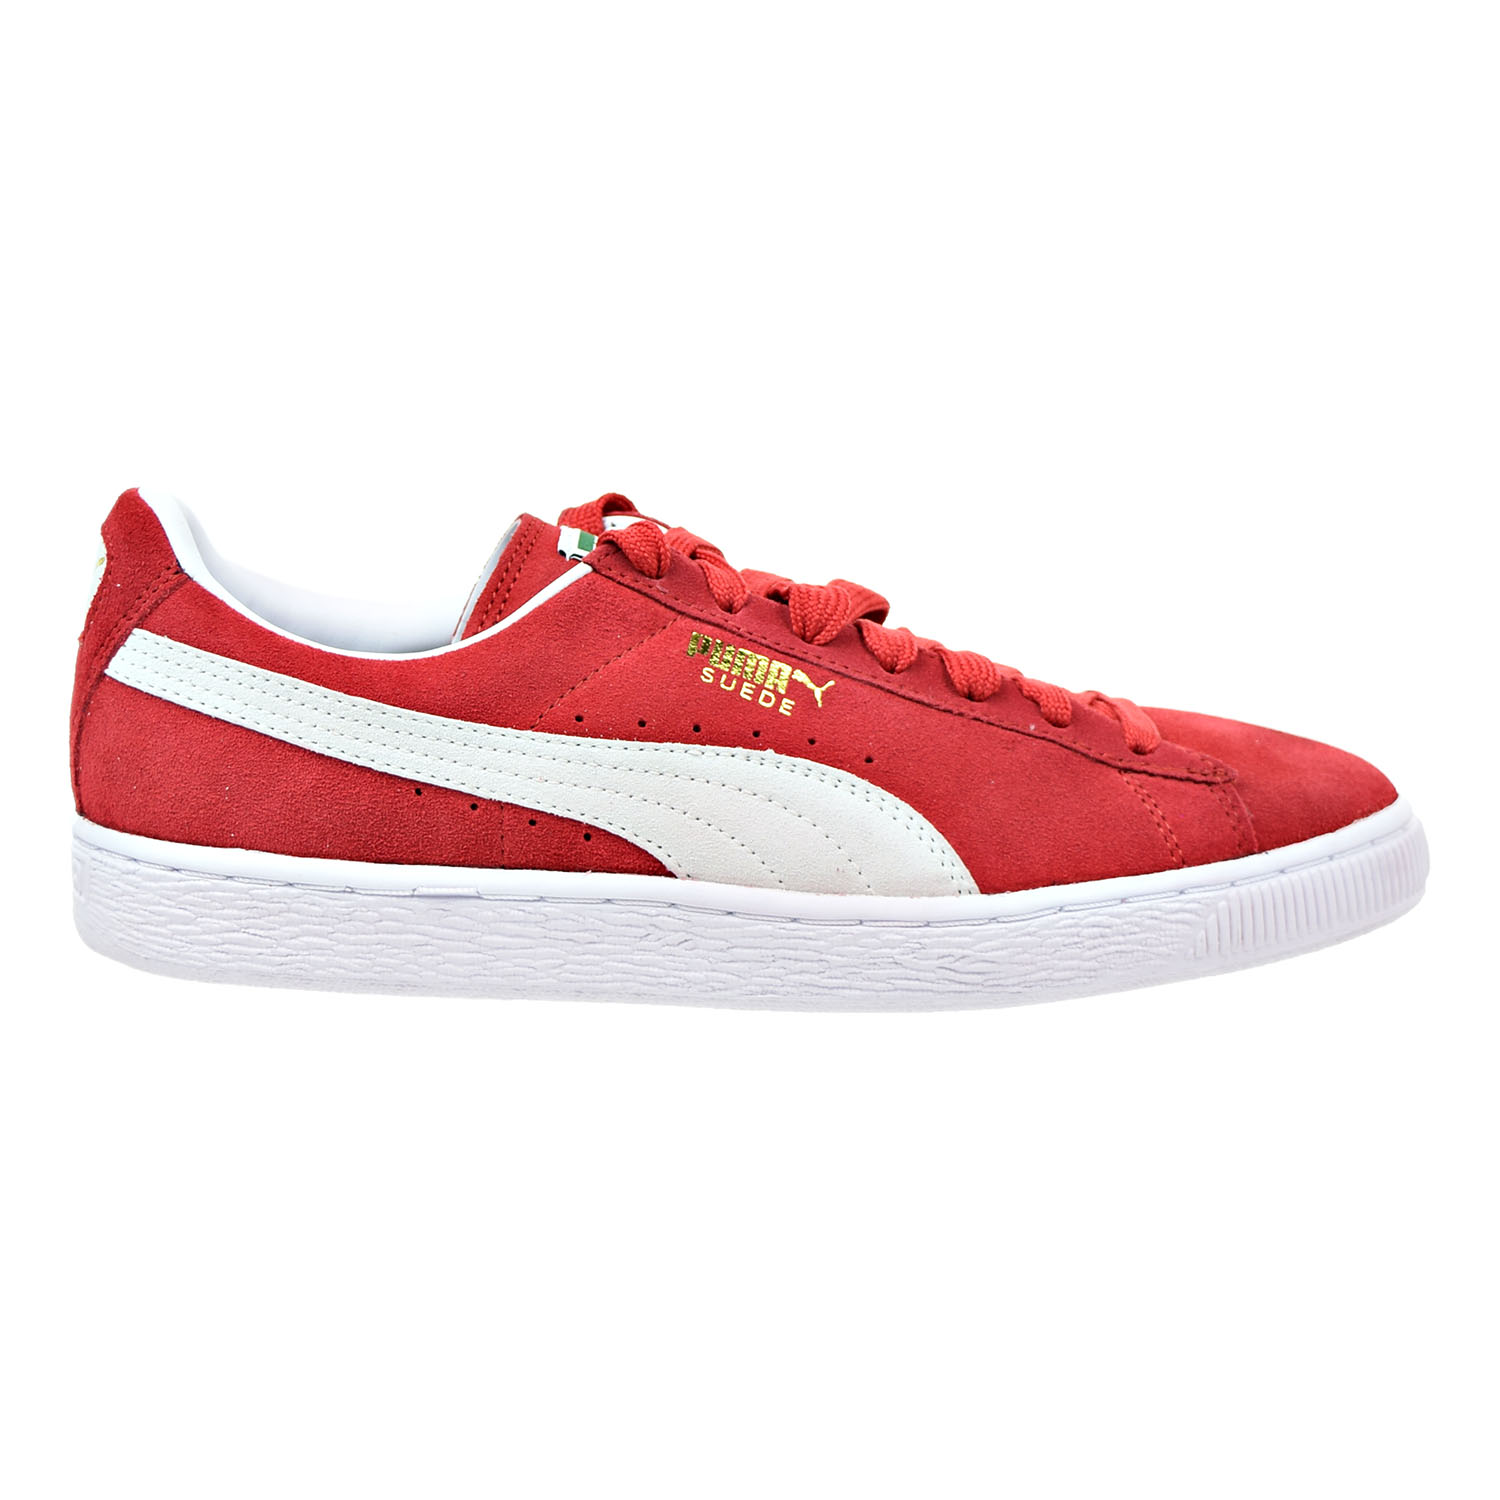 c5a798ae50b7f6 Details about Puma Suede Classic Men s Sneakers High Risk Red-White  352634-65